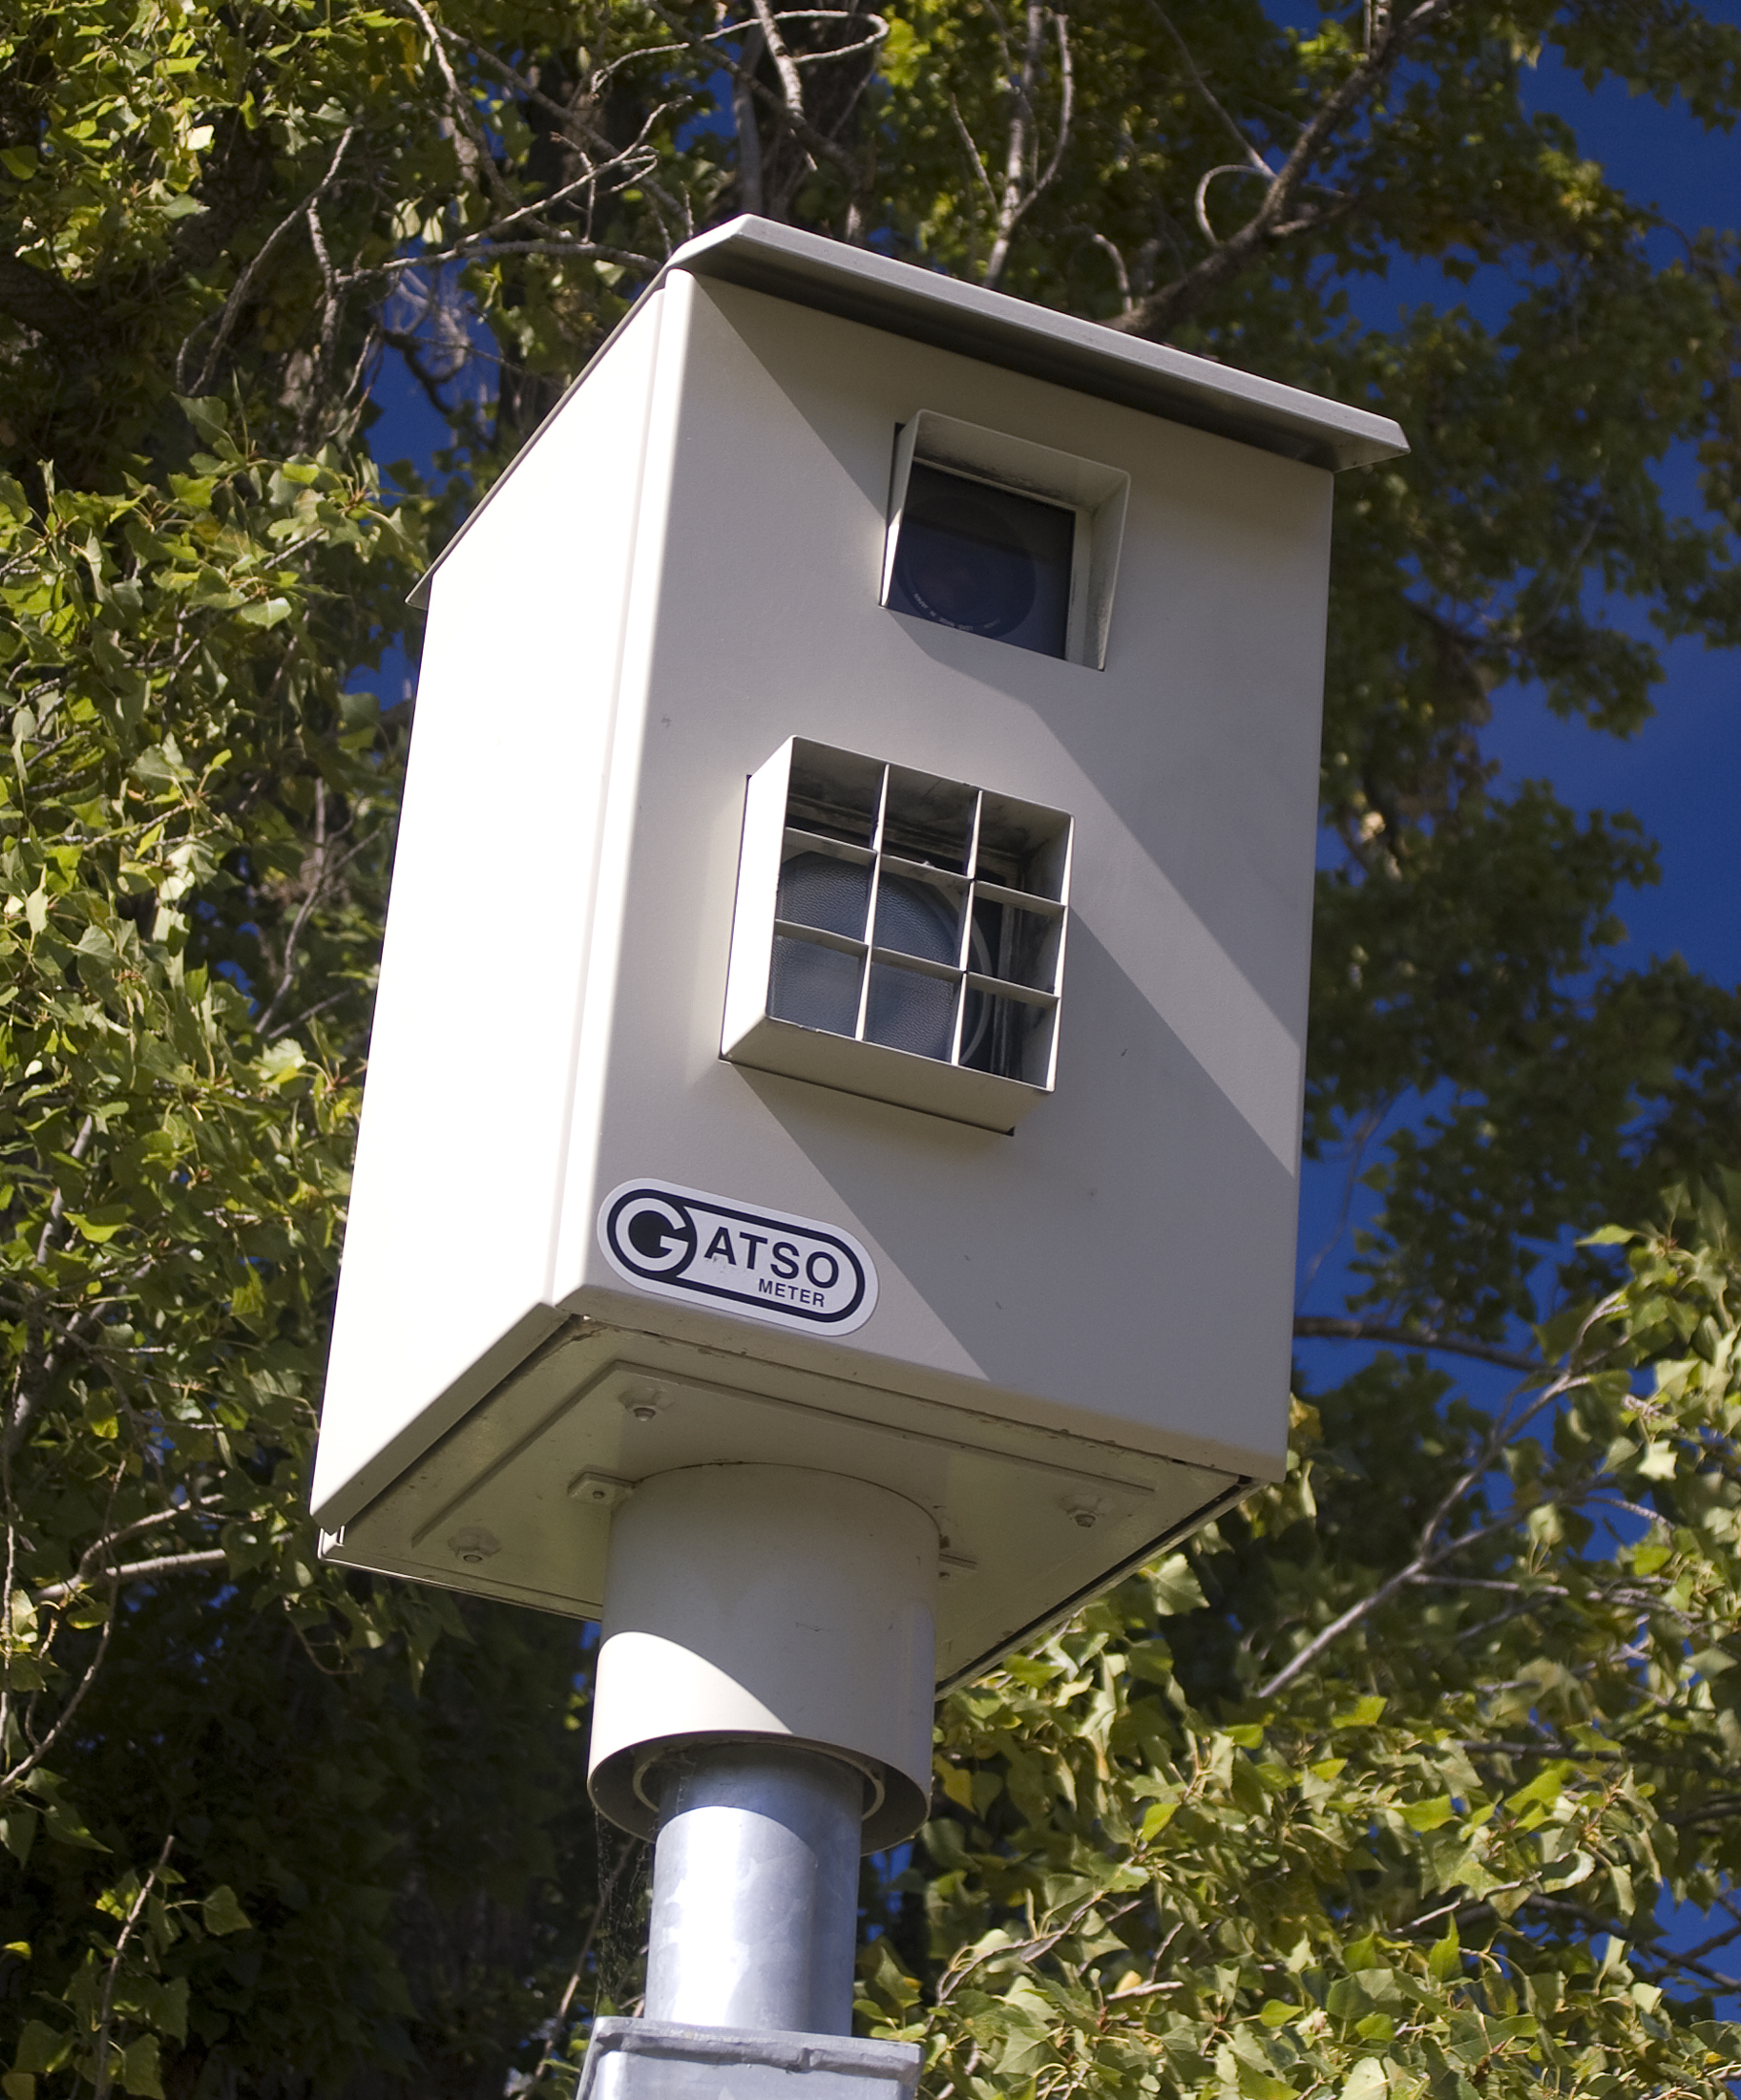 https://upload.wikimedia.org/wikipedia/commons/8/80/Gatso_Meter_speed_camera_in_Canberra.jpg